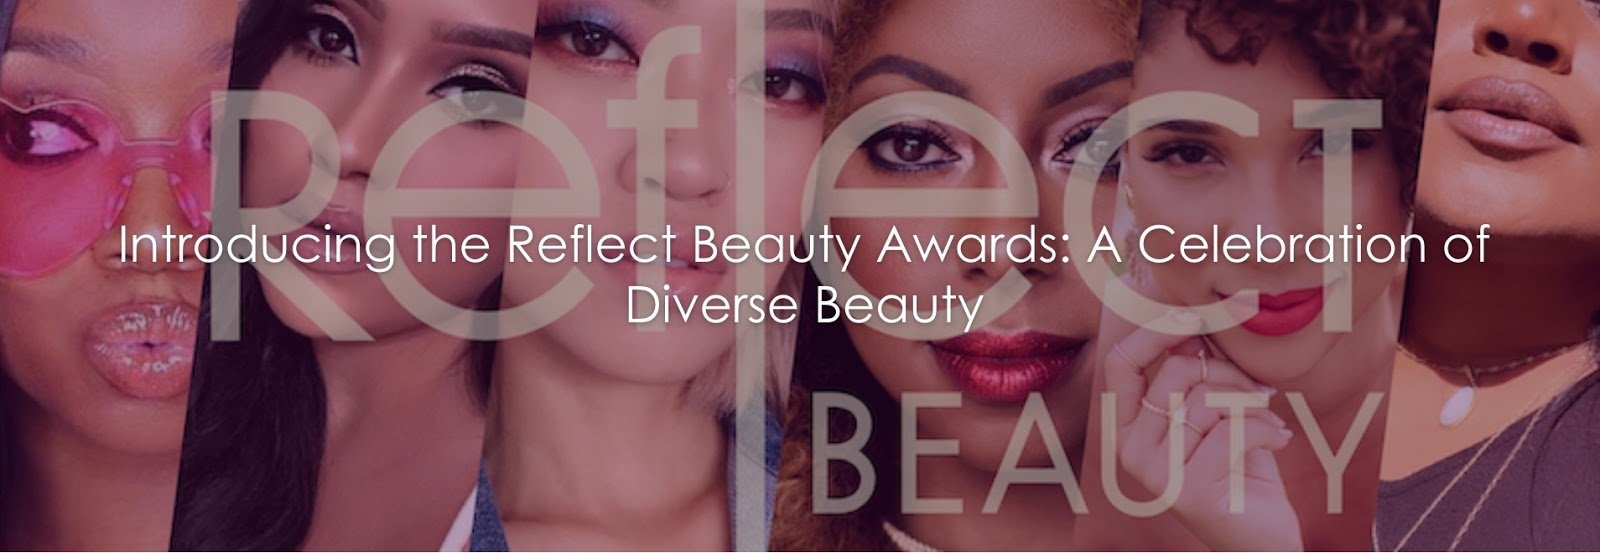 Introducing the Reflect Beauty Awards: A Celebration of Diverse Beauty